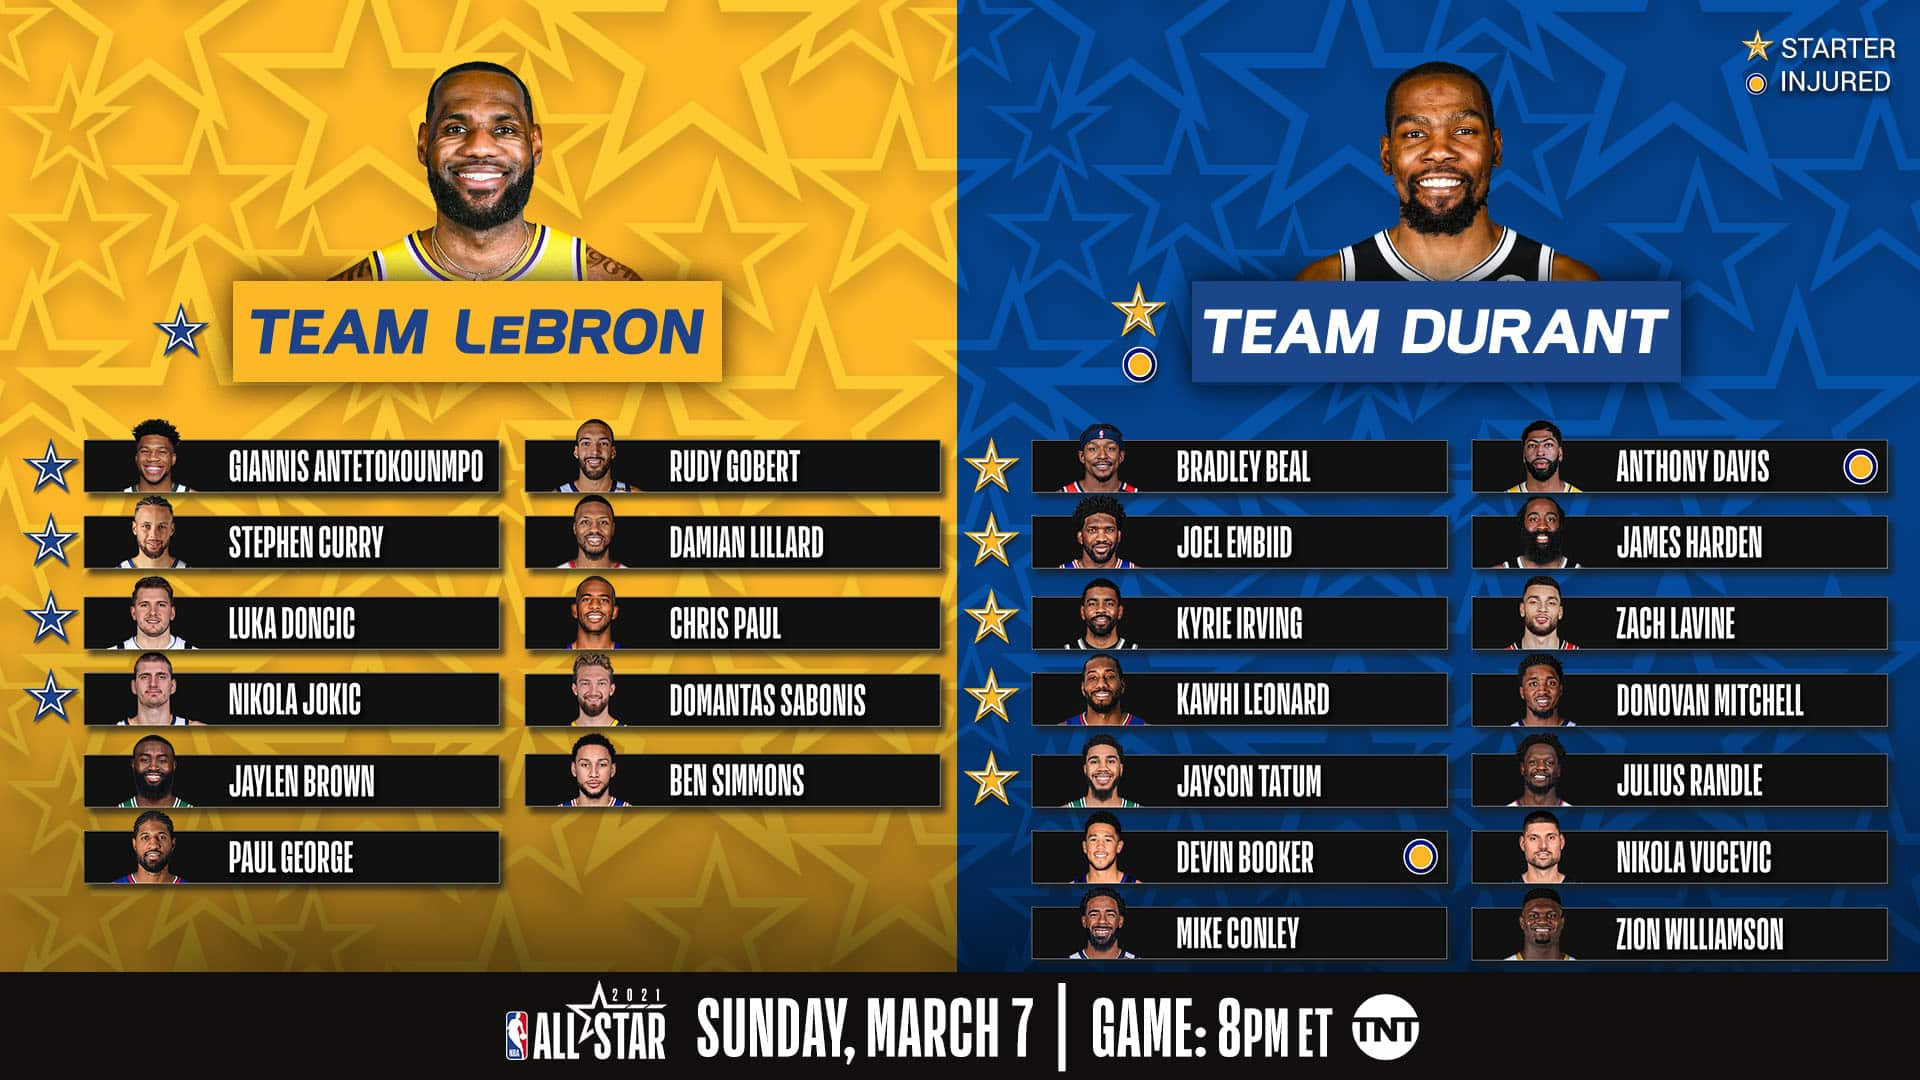 NBA All Star Game Best Bets And Player Props: Team LeBron vs Team Durant